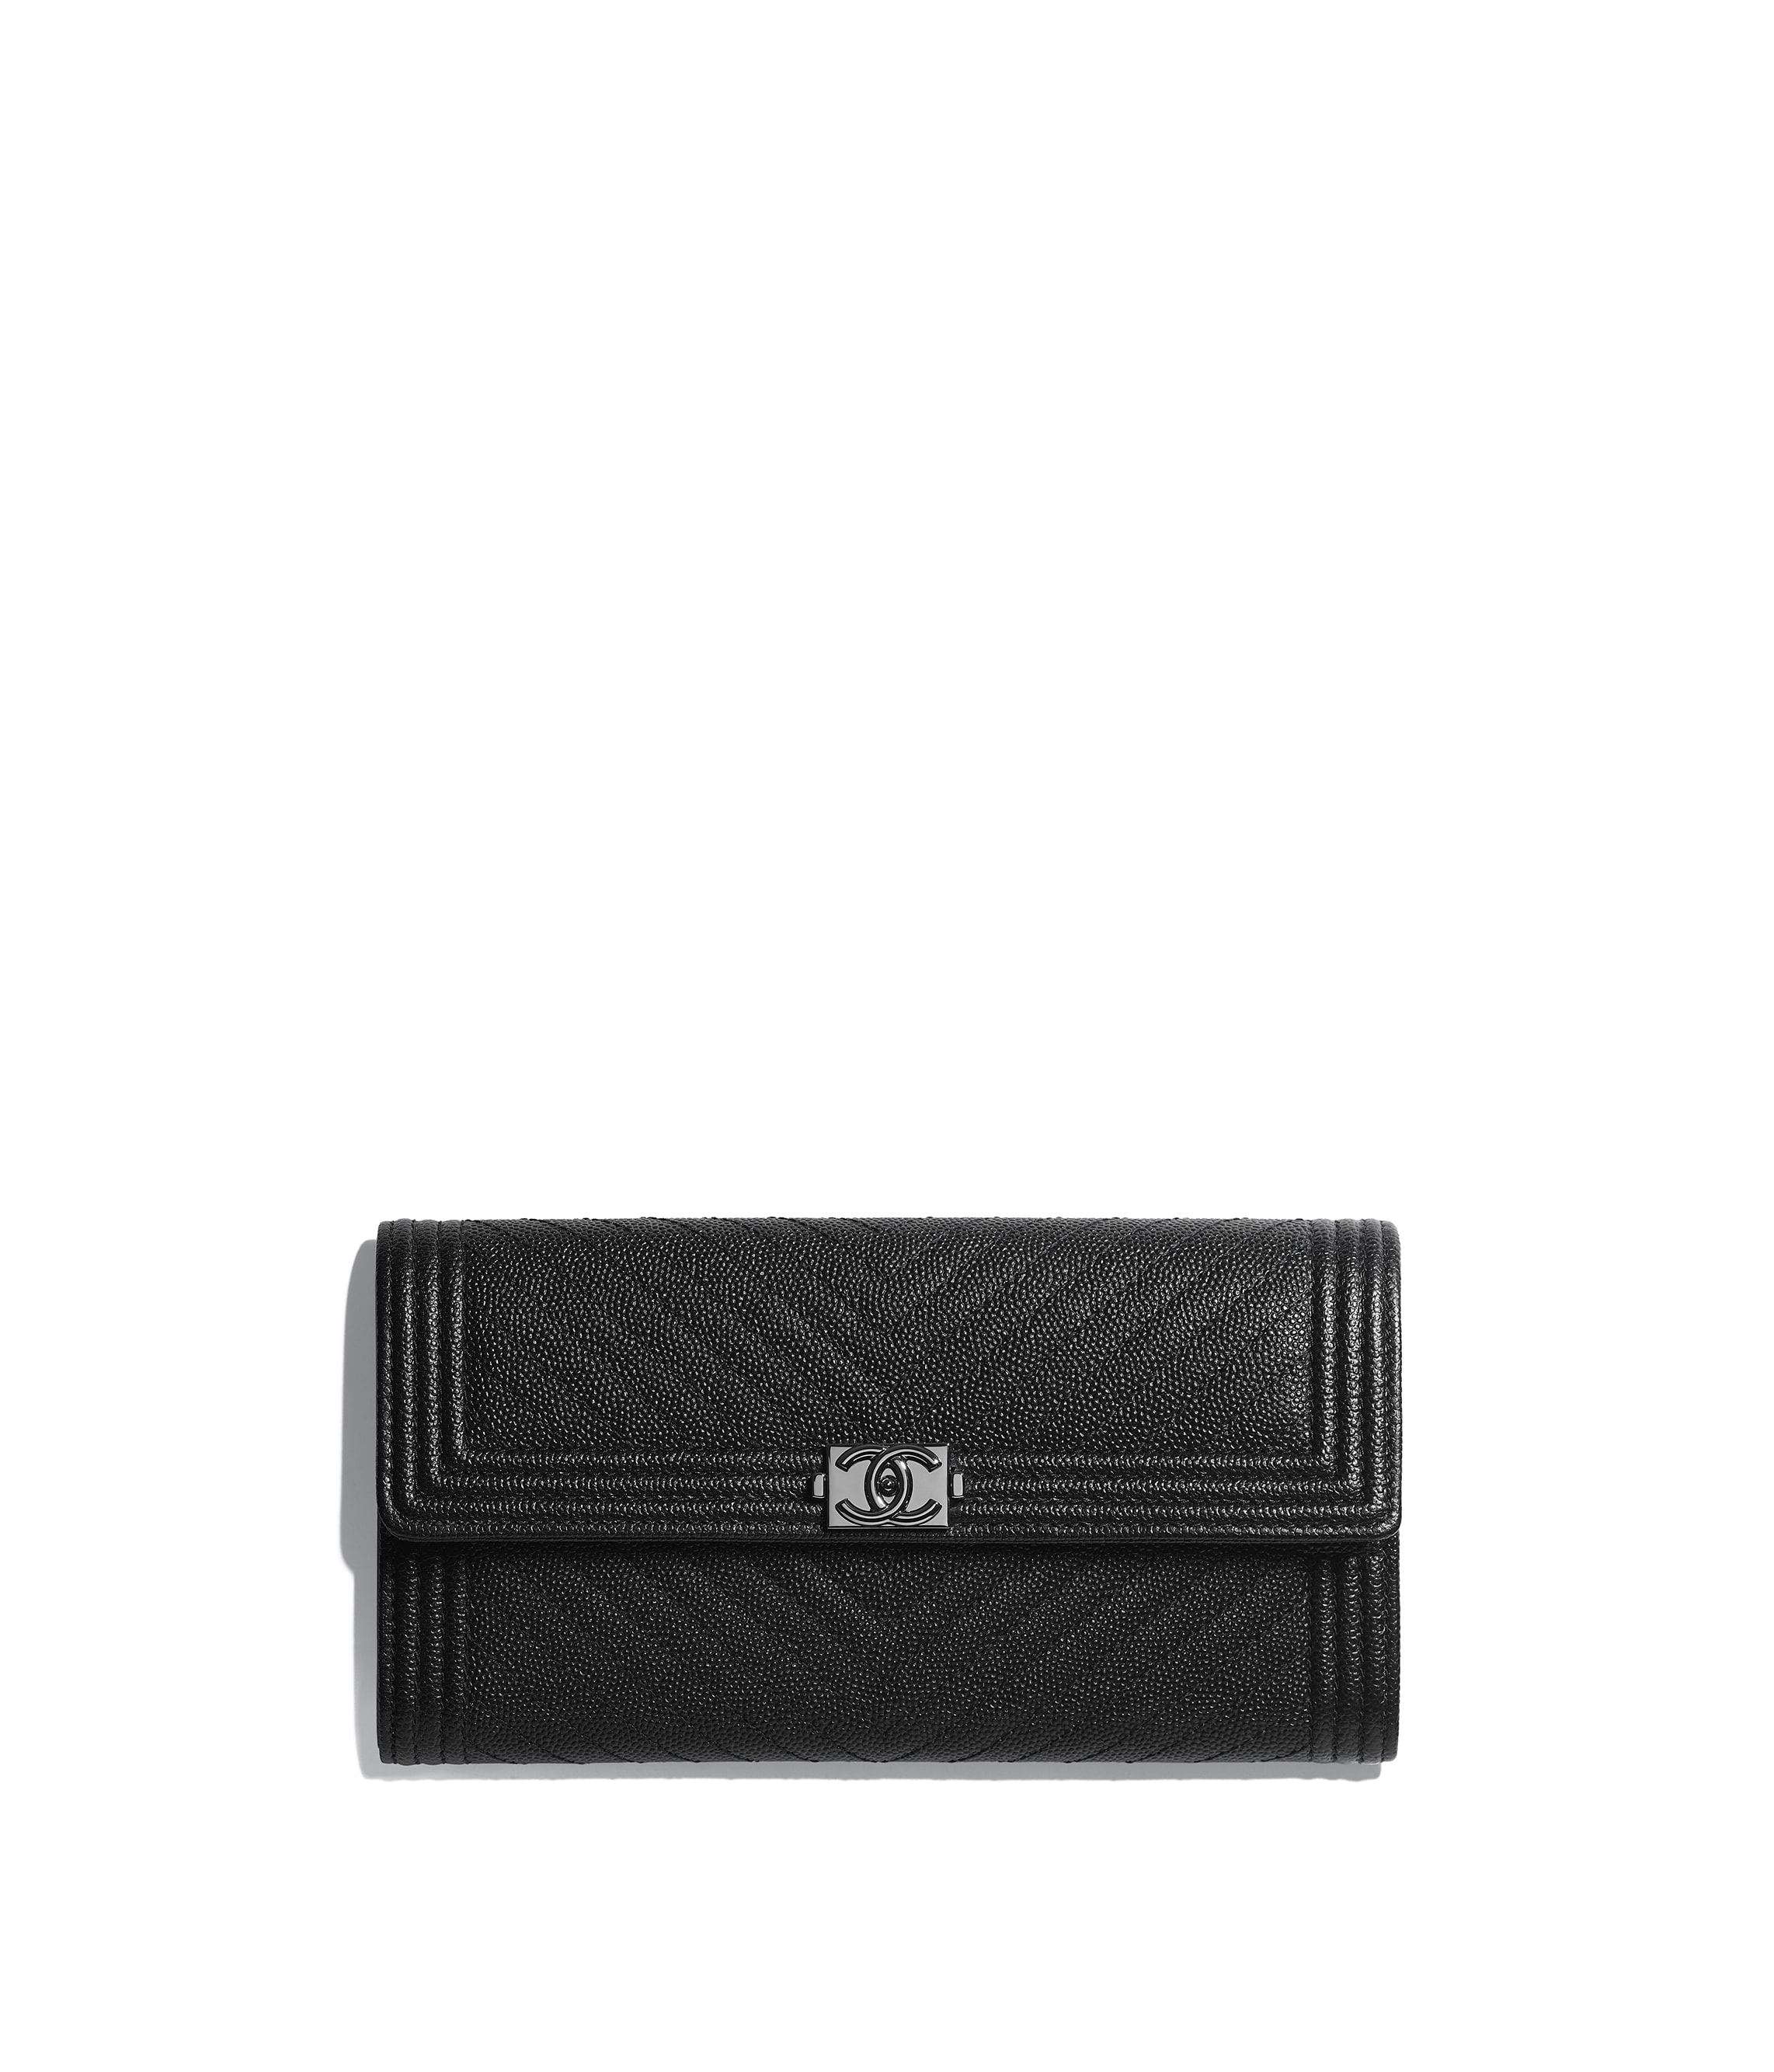 aab53d3f3c6ca Boy Chanel Flap Wallet - Best Photo Wallet Justiceforkenny.Org